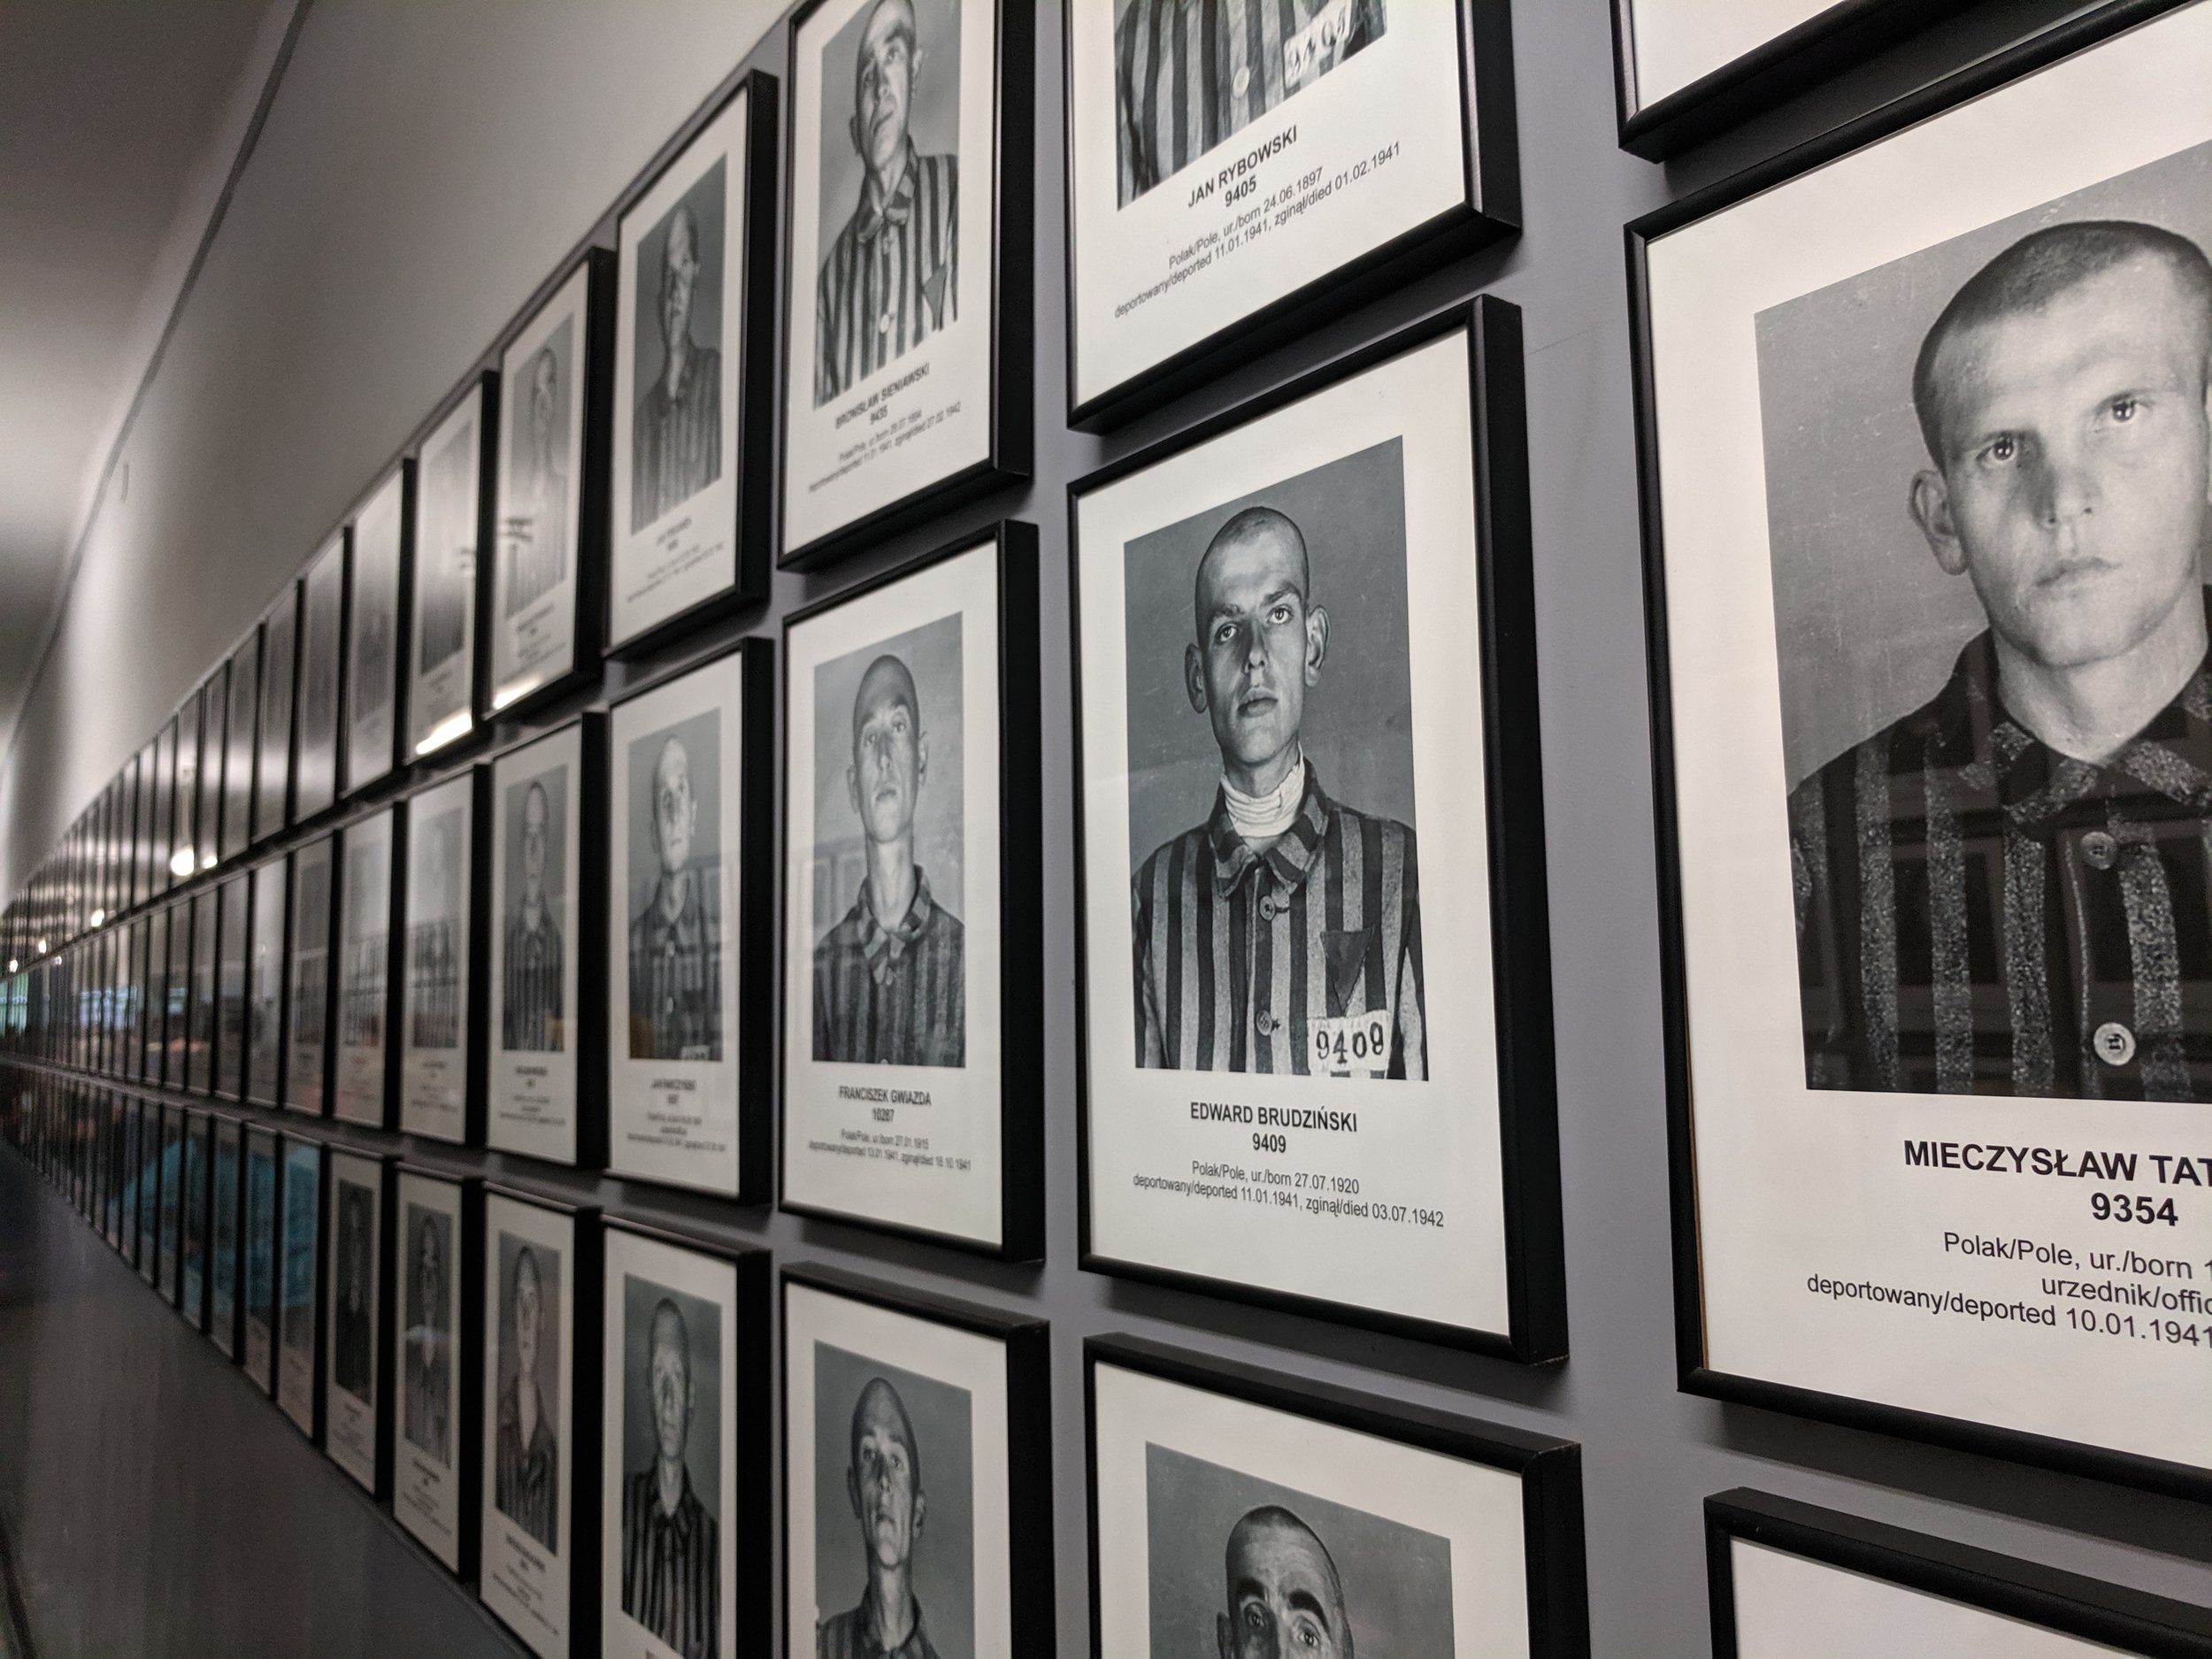 At Auschwitz (and every death camp): each internee was robbed of identity, issued uniform striped pyjamas in place of all clothes and belongings, heads shaved (men and women), called by number instead of a name.